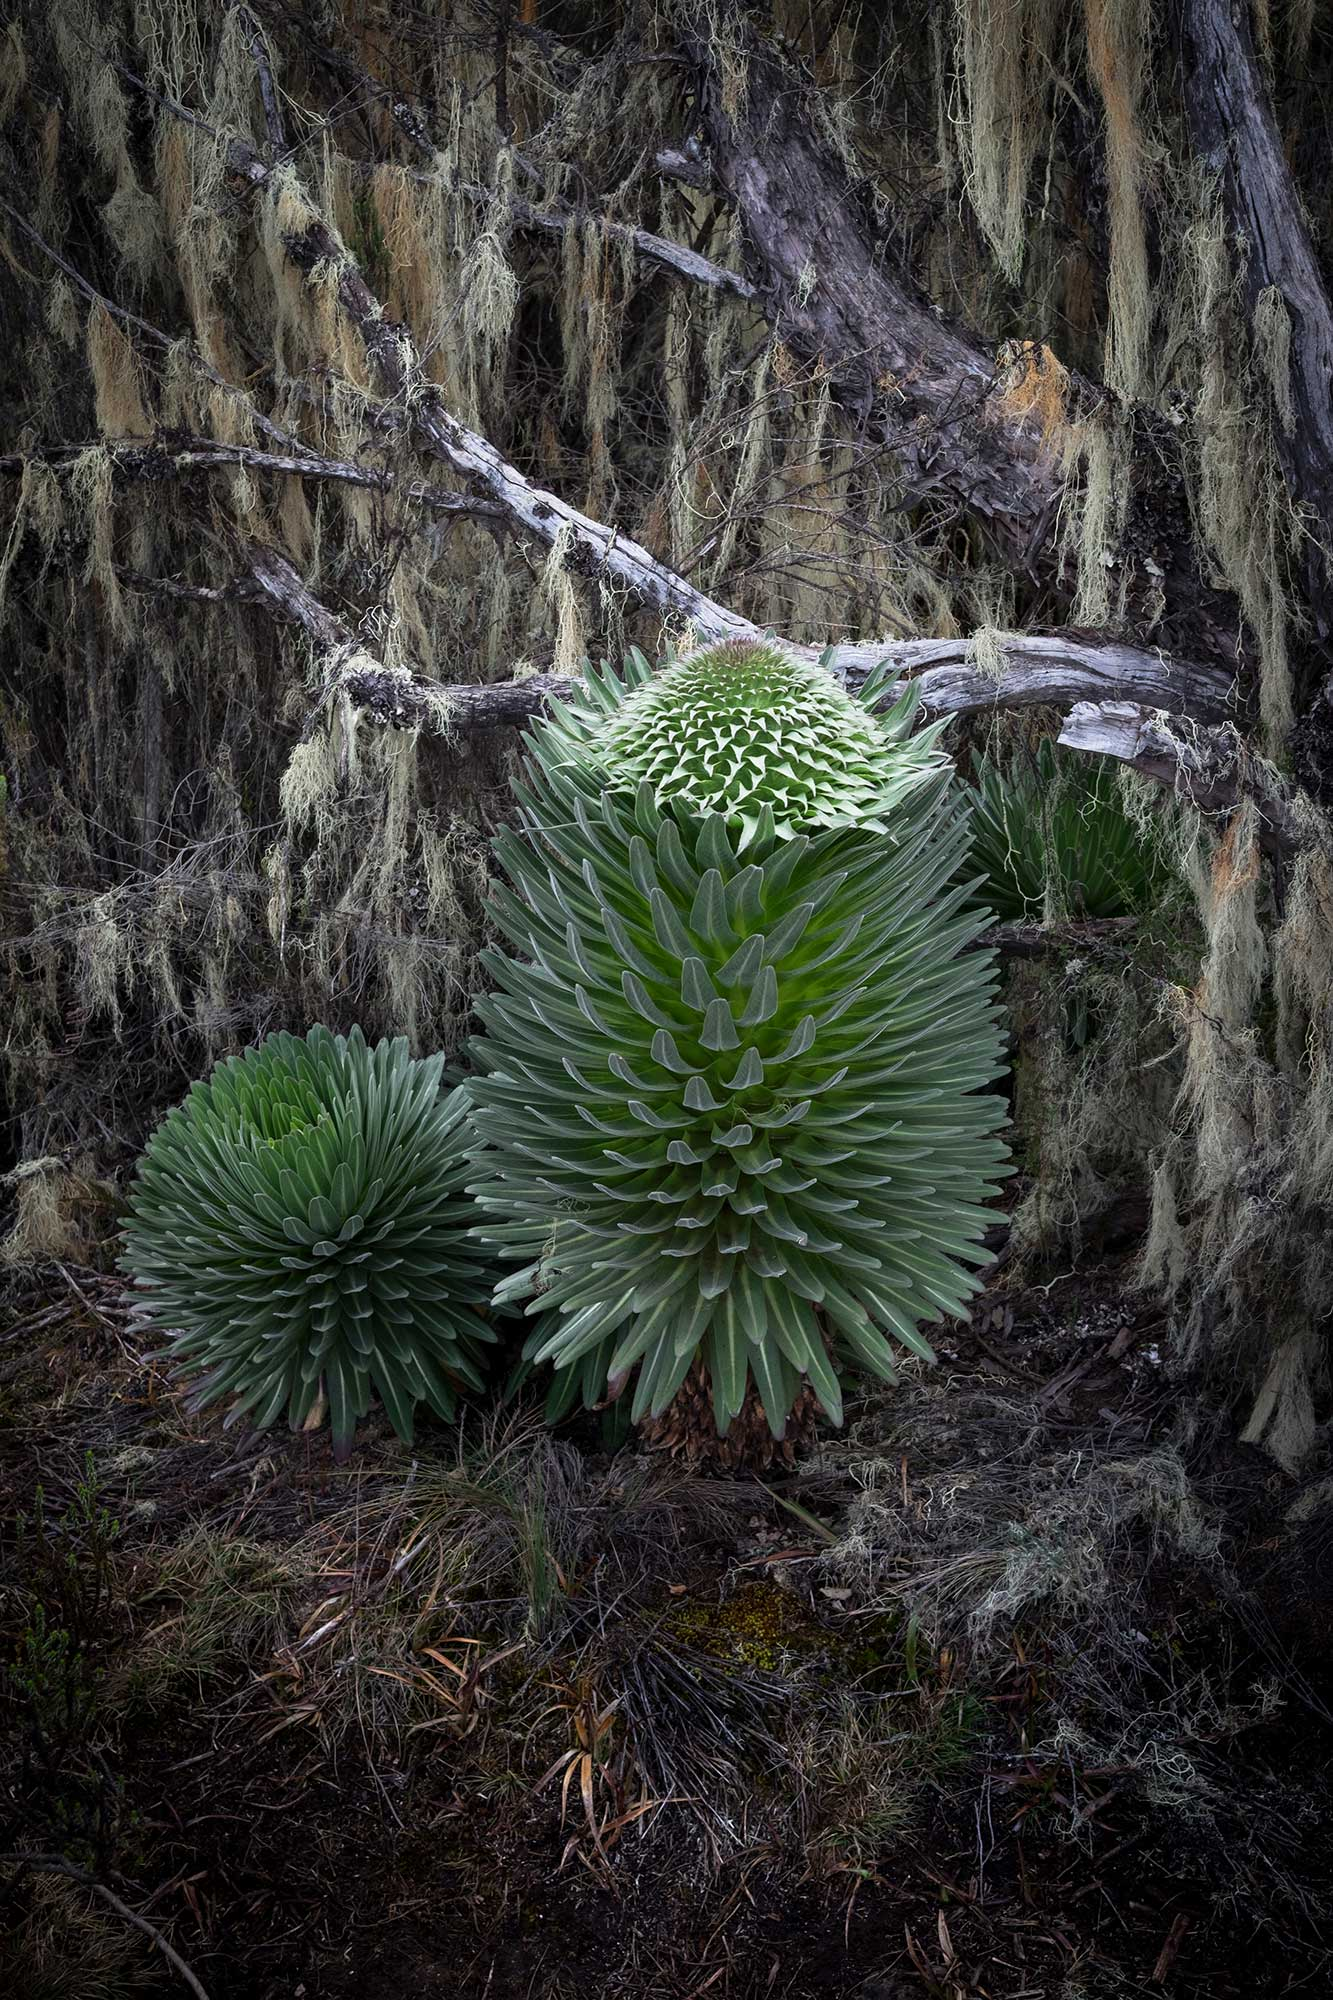 D3-17-unique-plants-of-shira-plateau-kilimanjaro.jpg